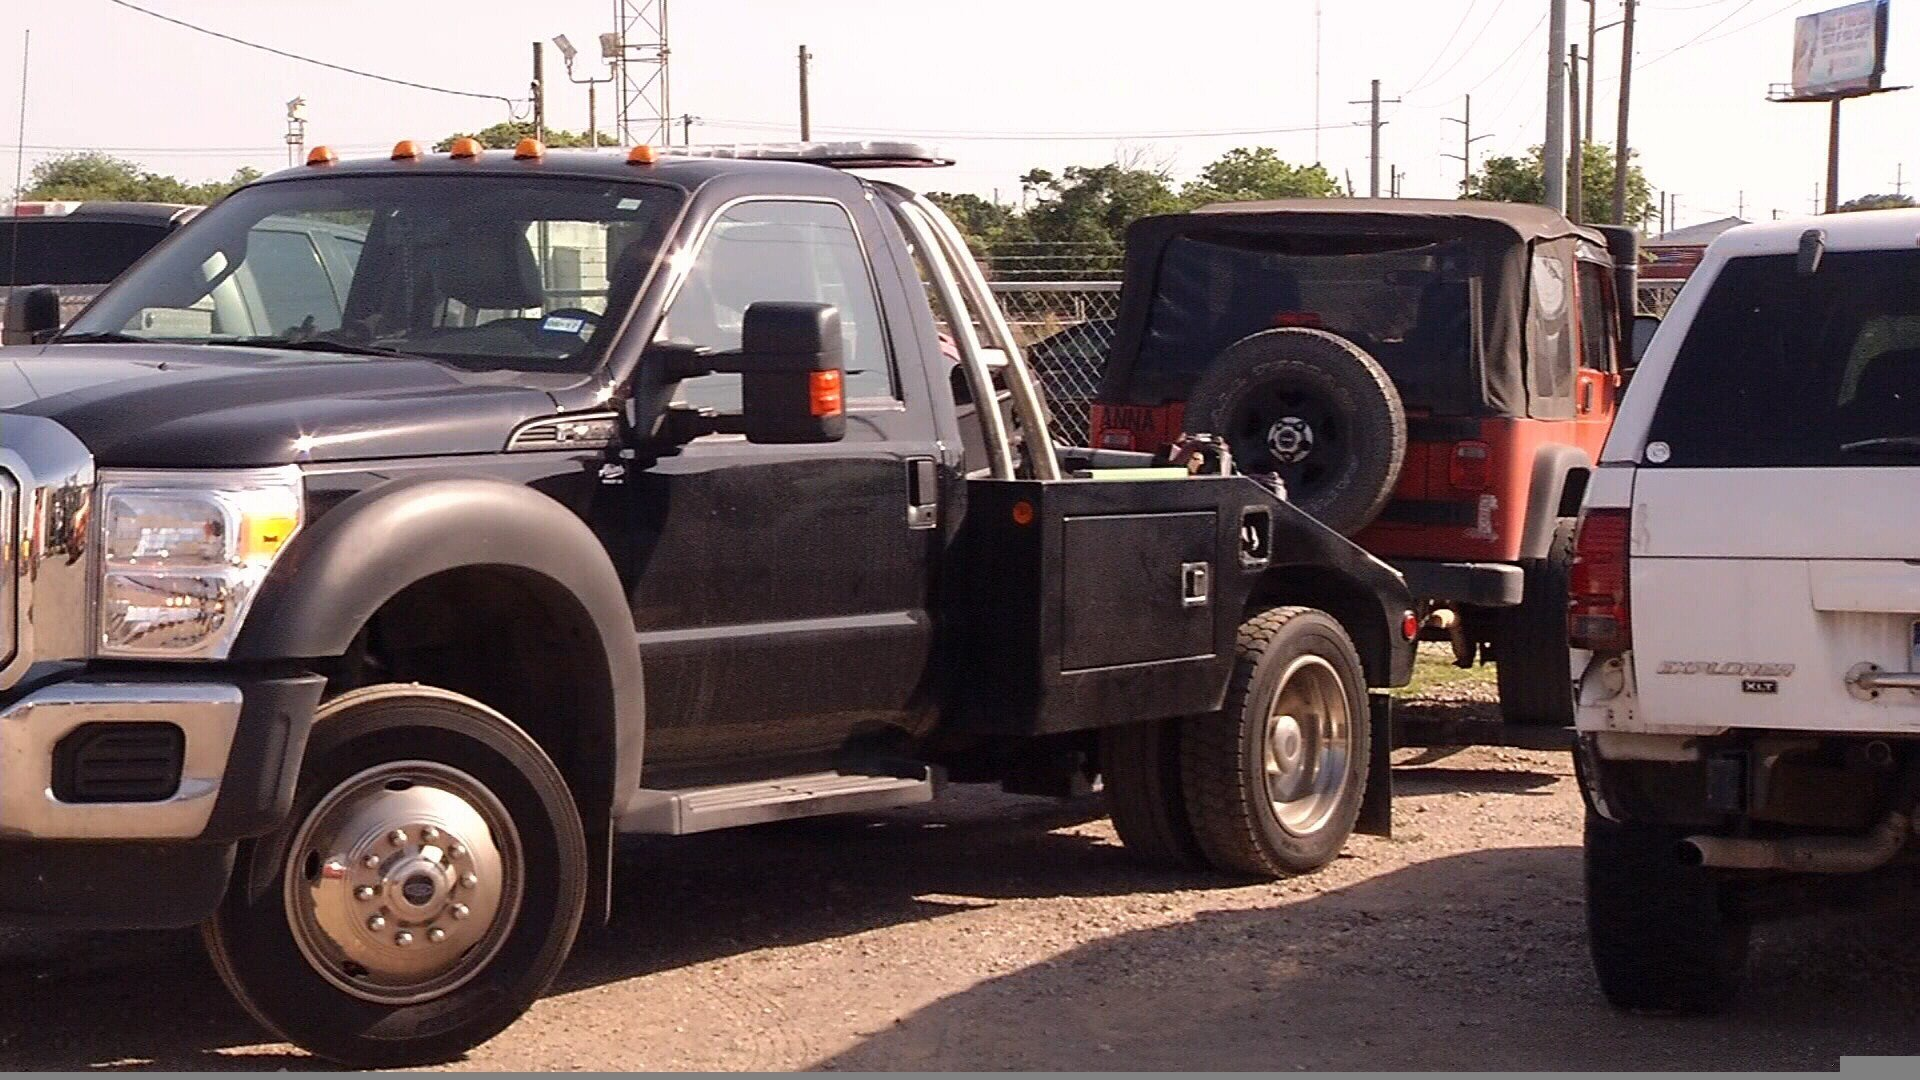 A look at a tow truck.